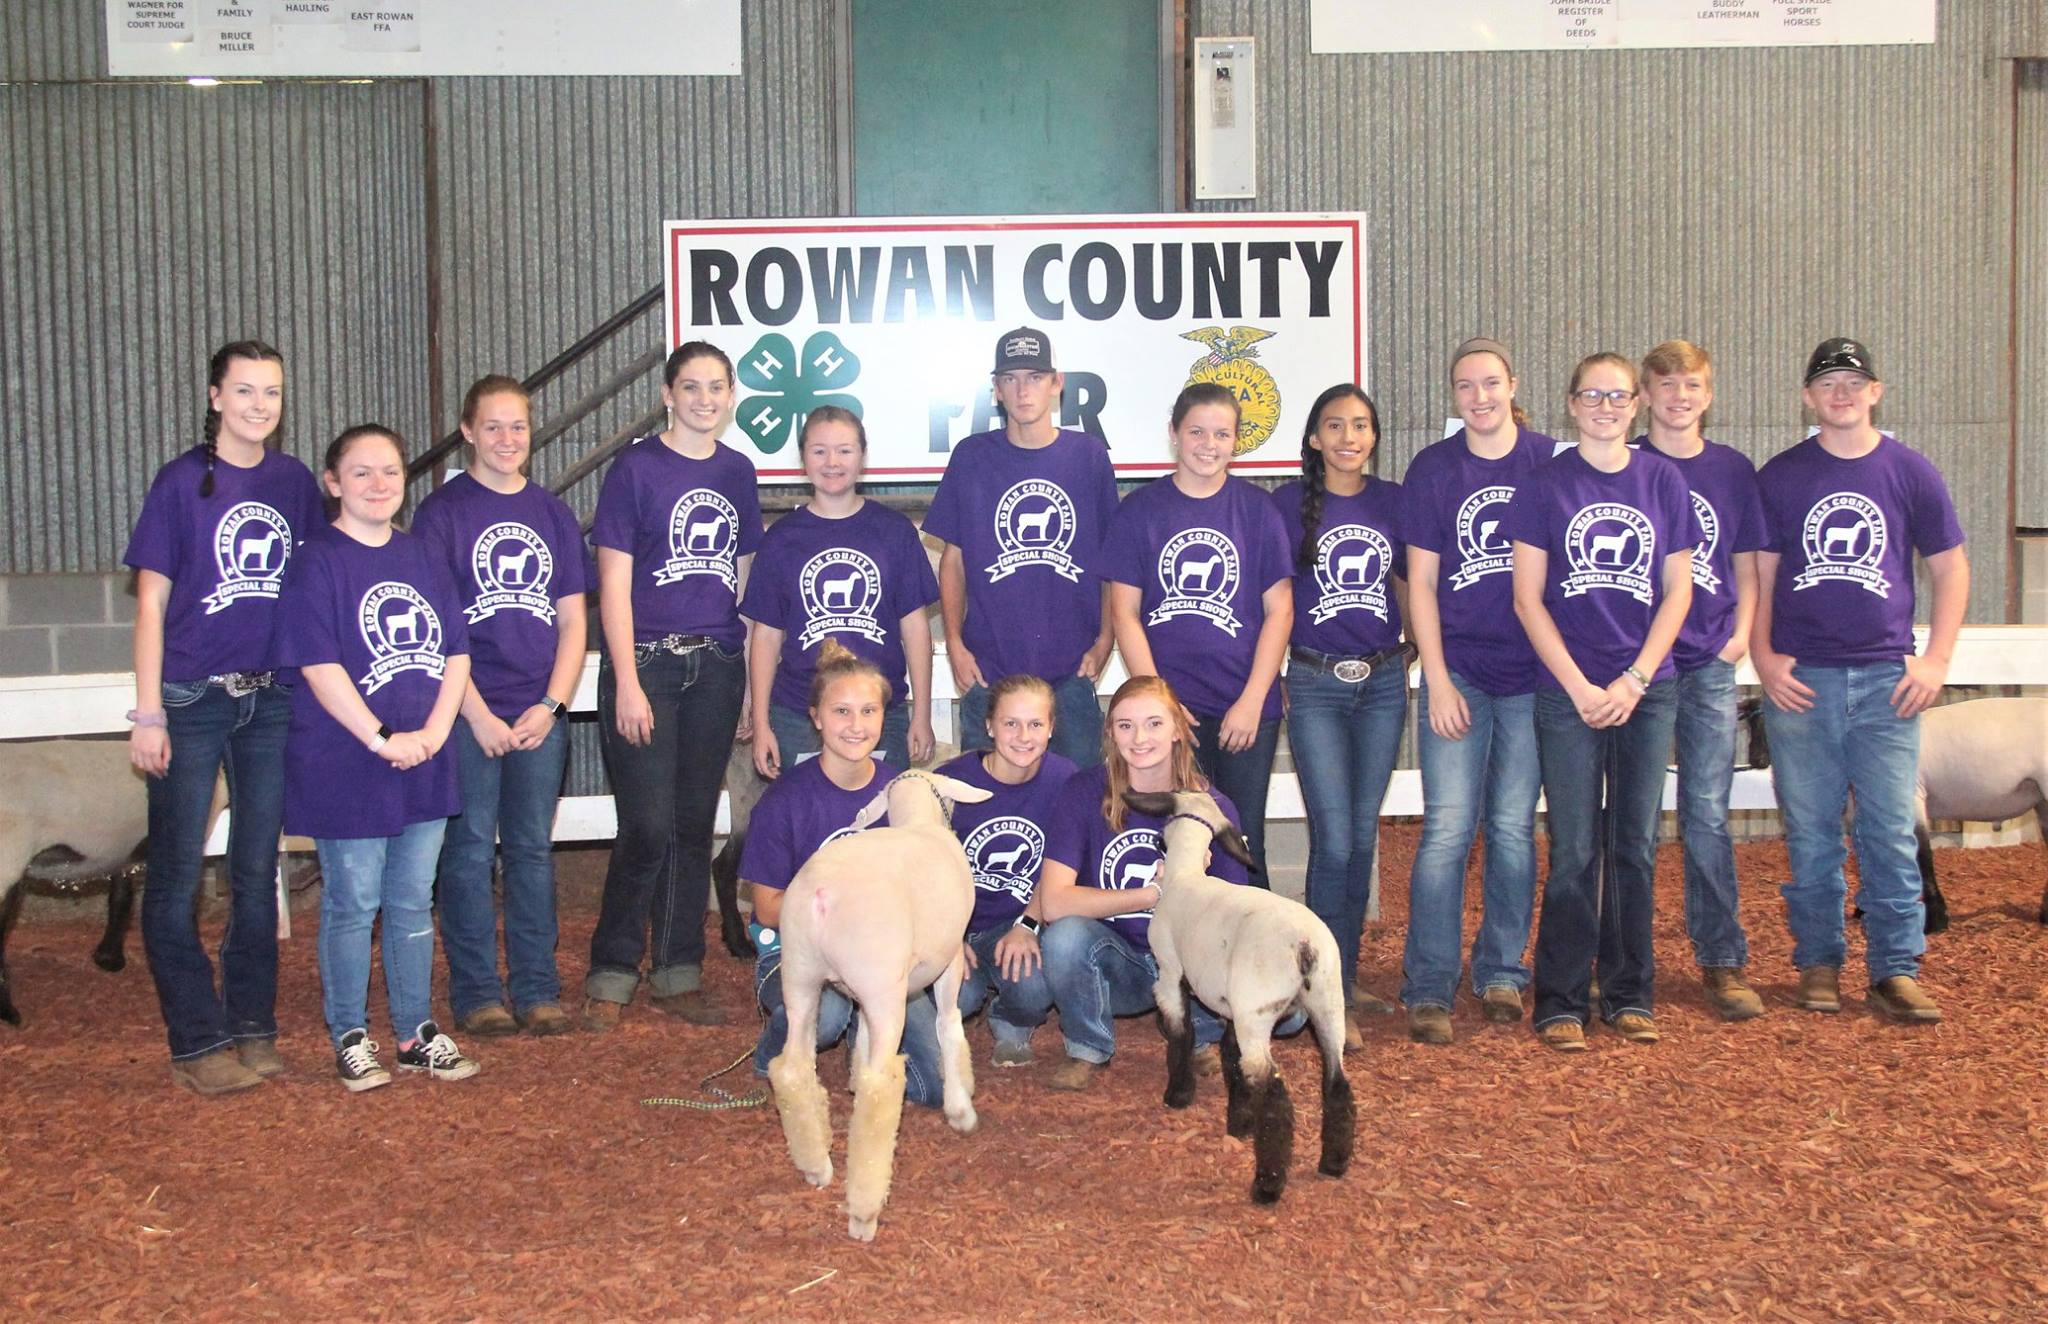 Sheep Show at fair for special needs youth or adults | North